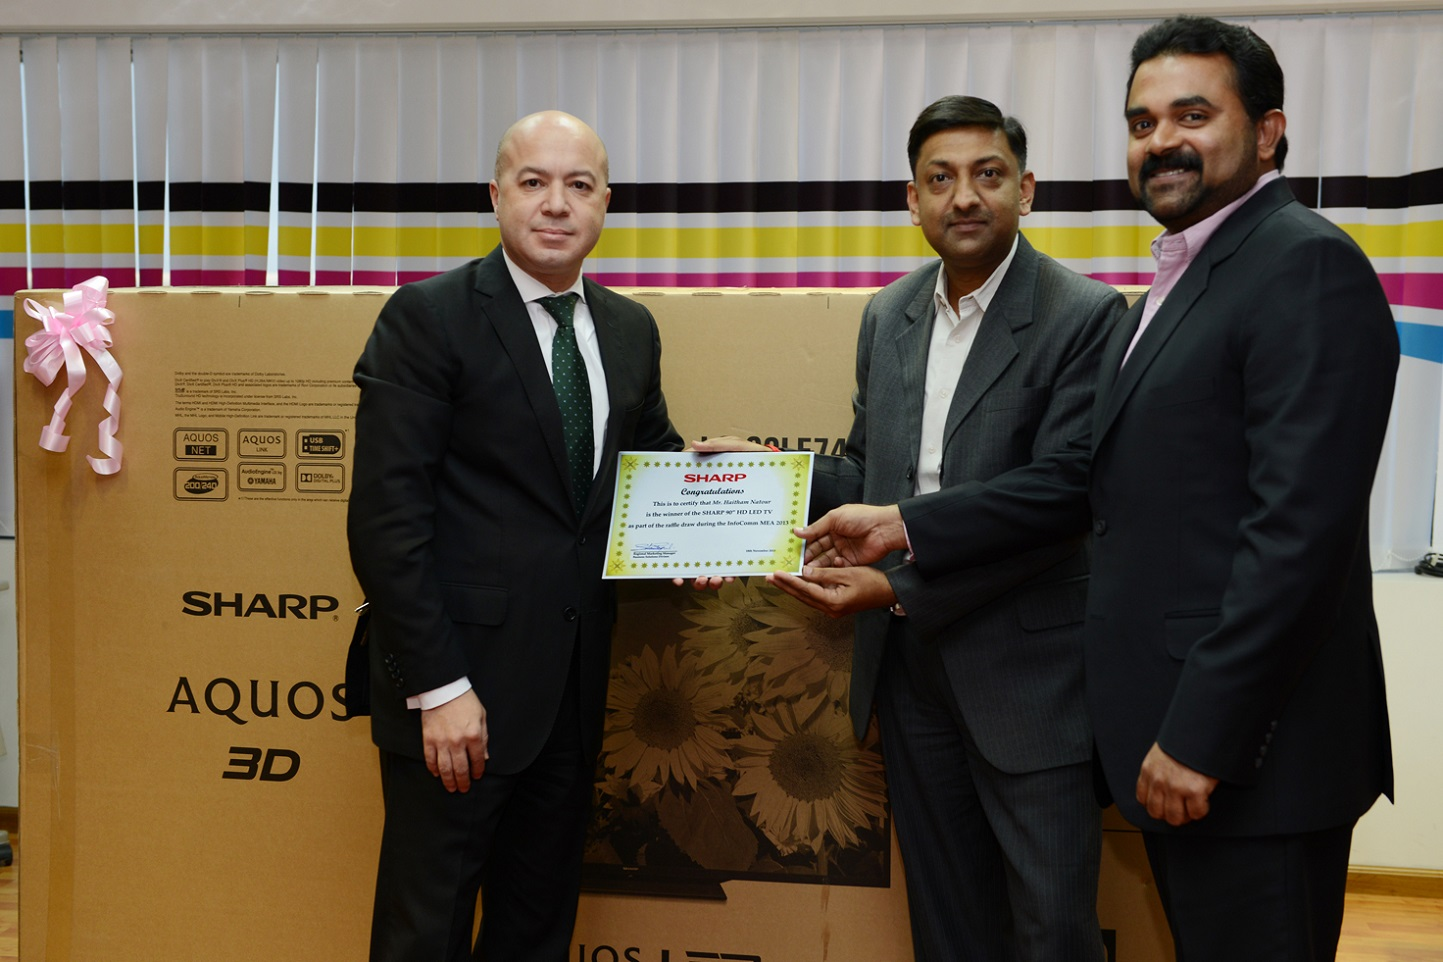 Mr. Natour receiving his prize and certificate from Mr. Rao and Mr. Samuel at the Sharp office